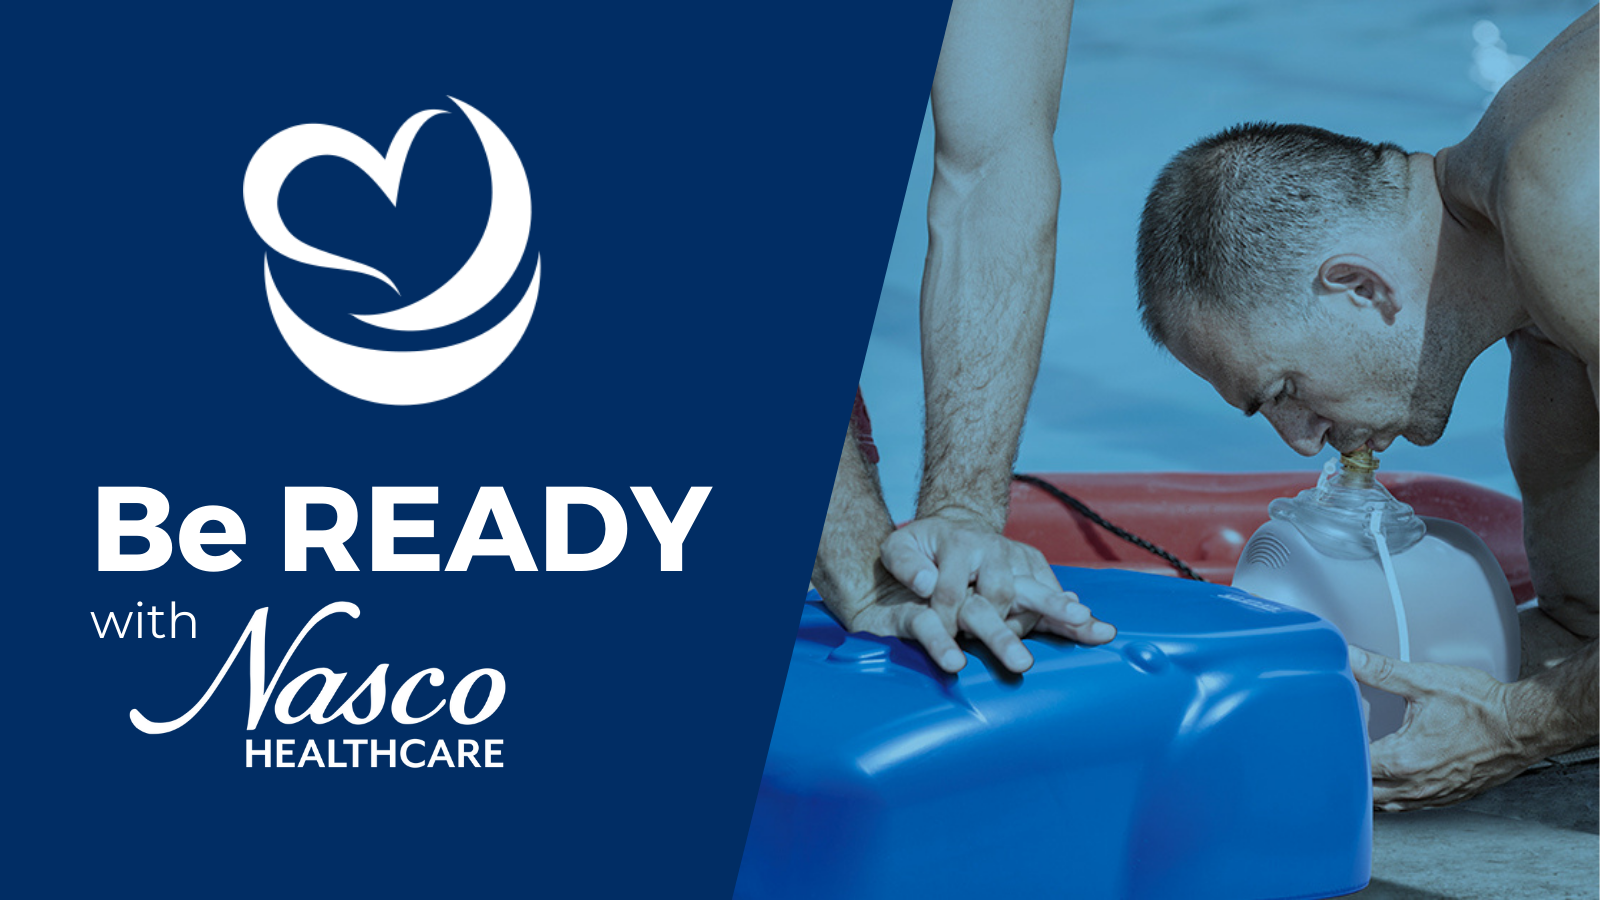 Be READY with Nasco Healthcare